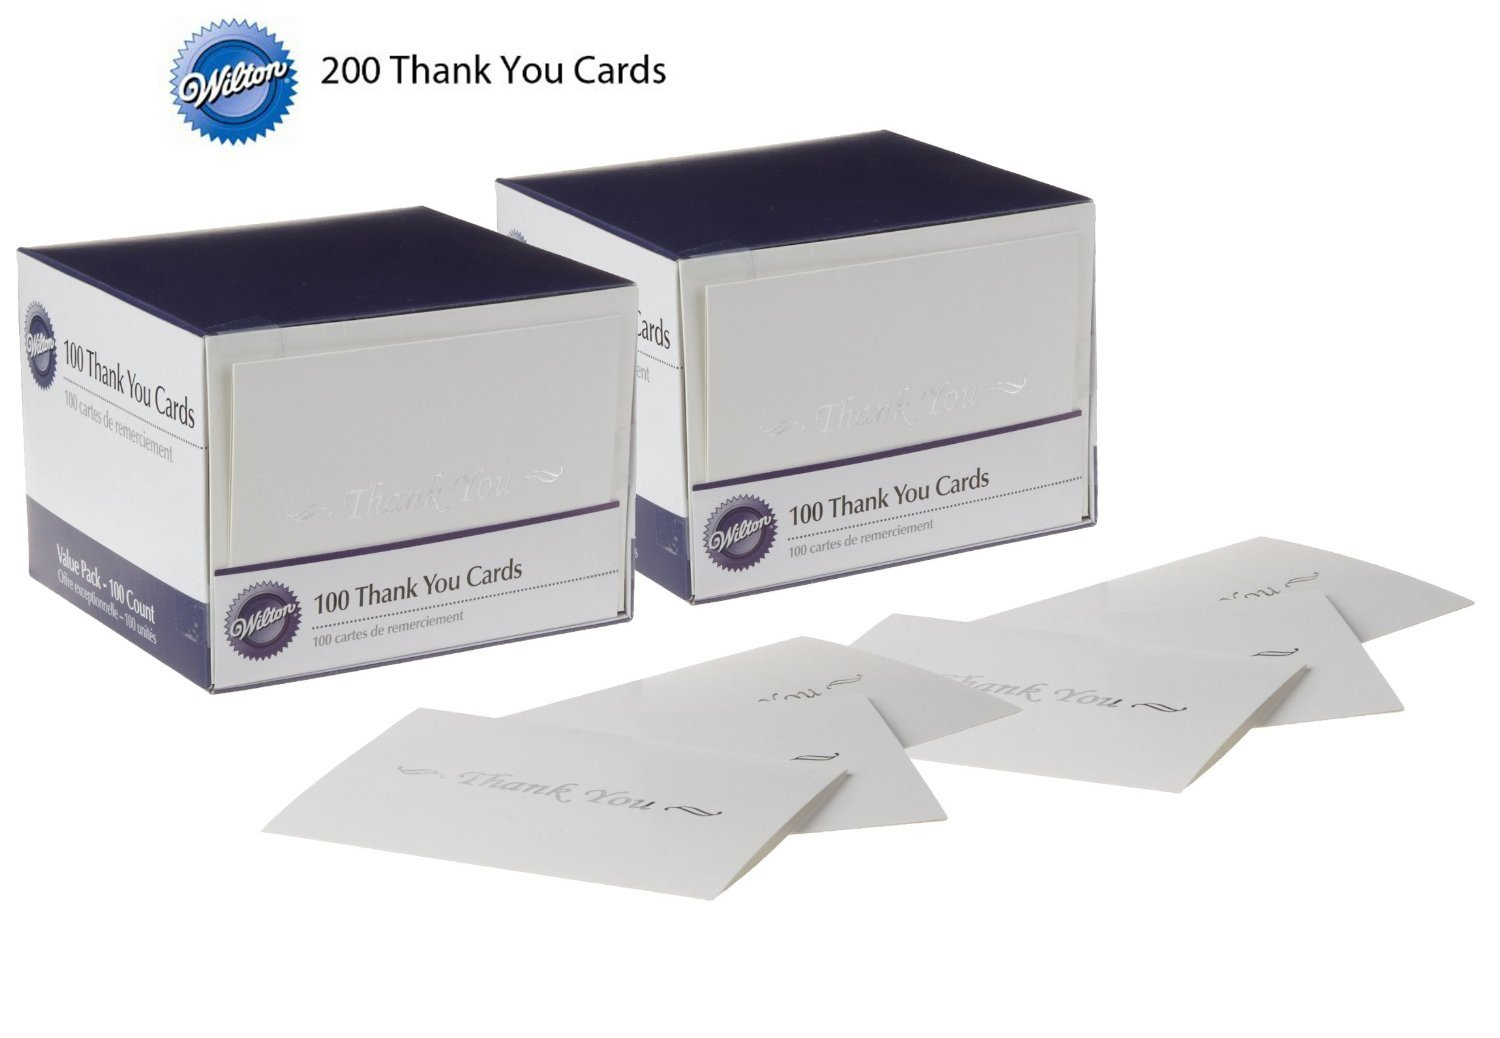 Wilton 100-Pack Basic Thank You Cards - 200-Pack